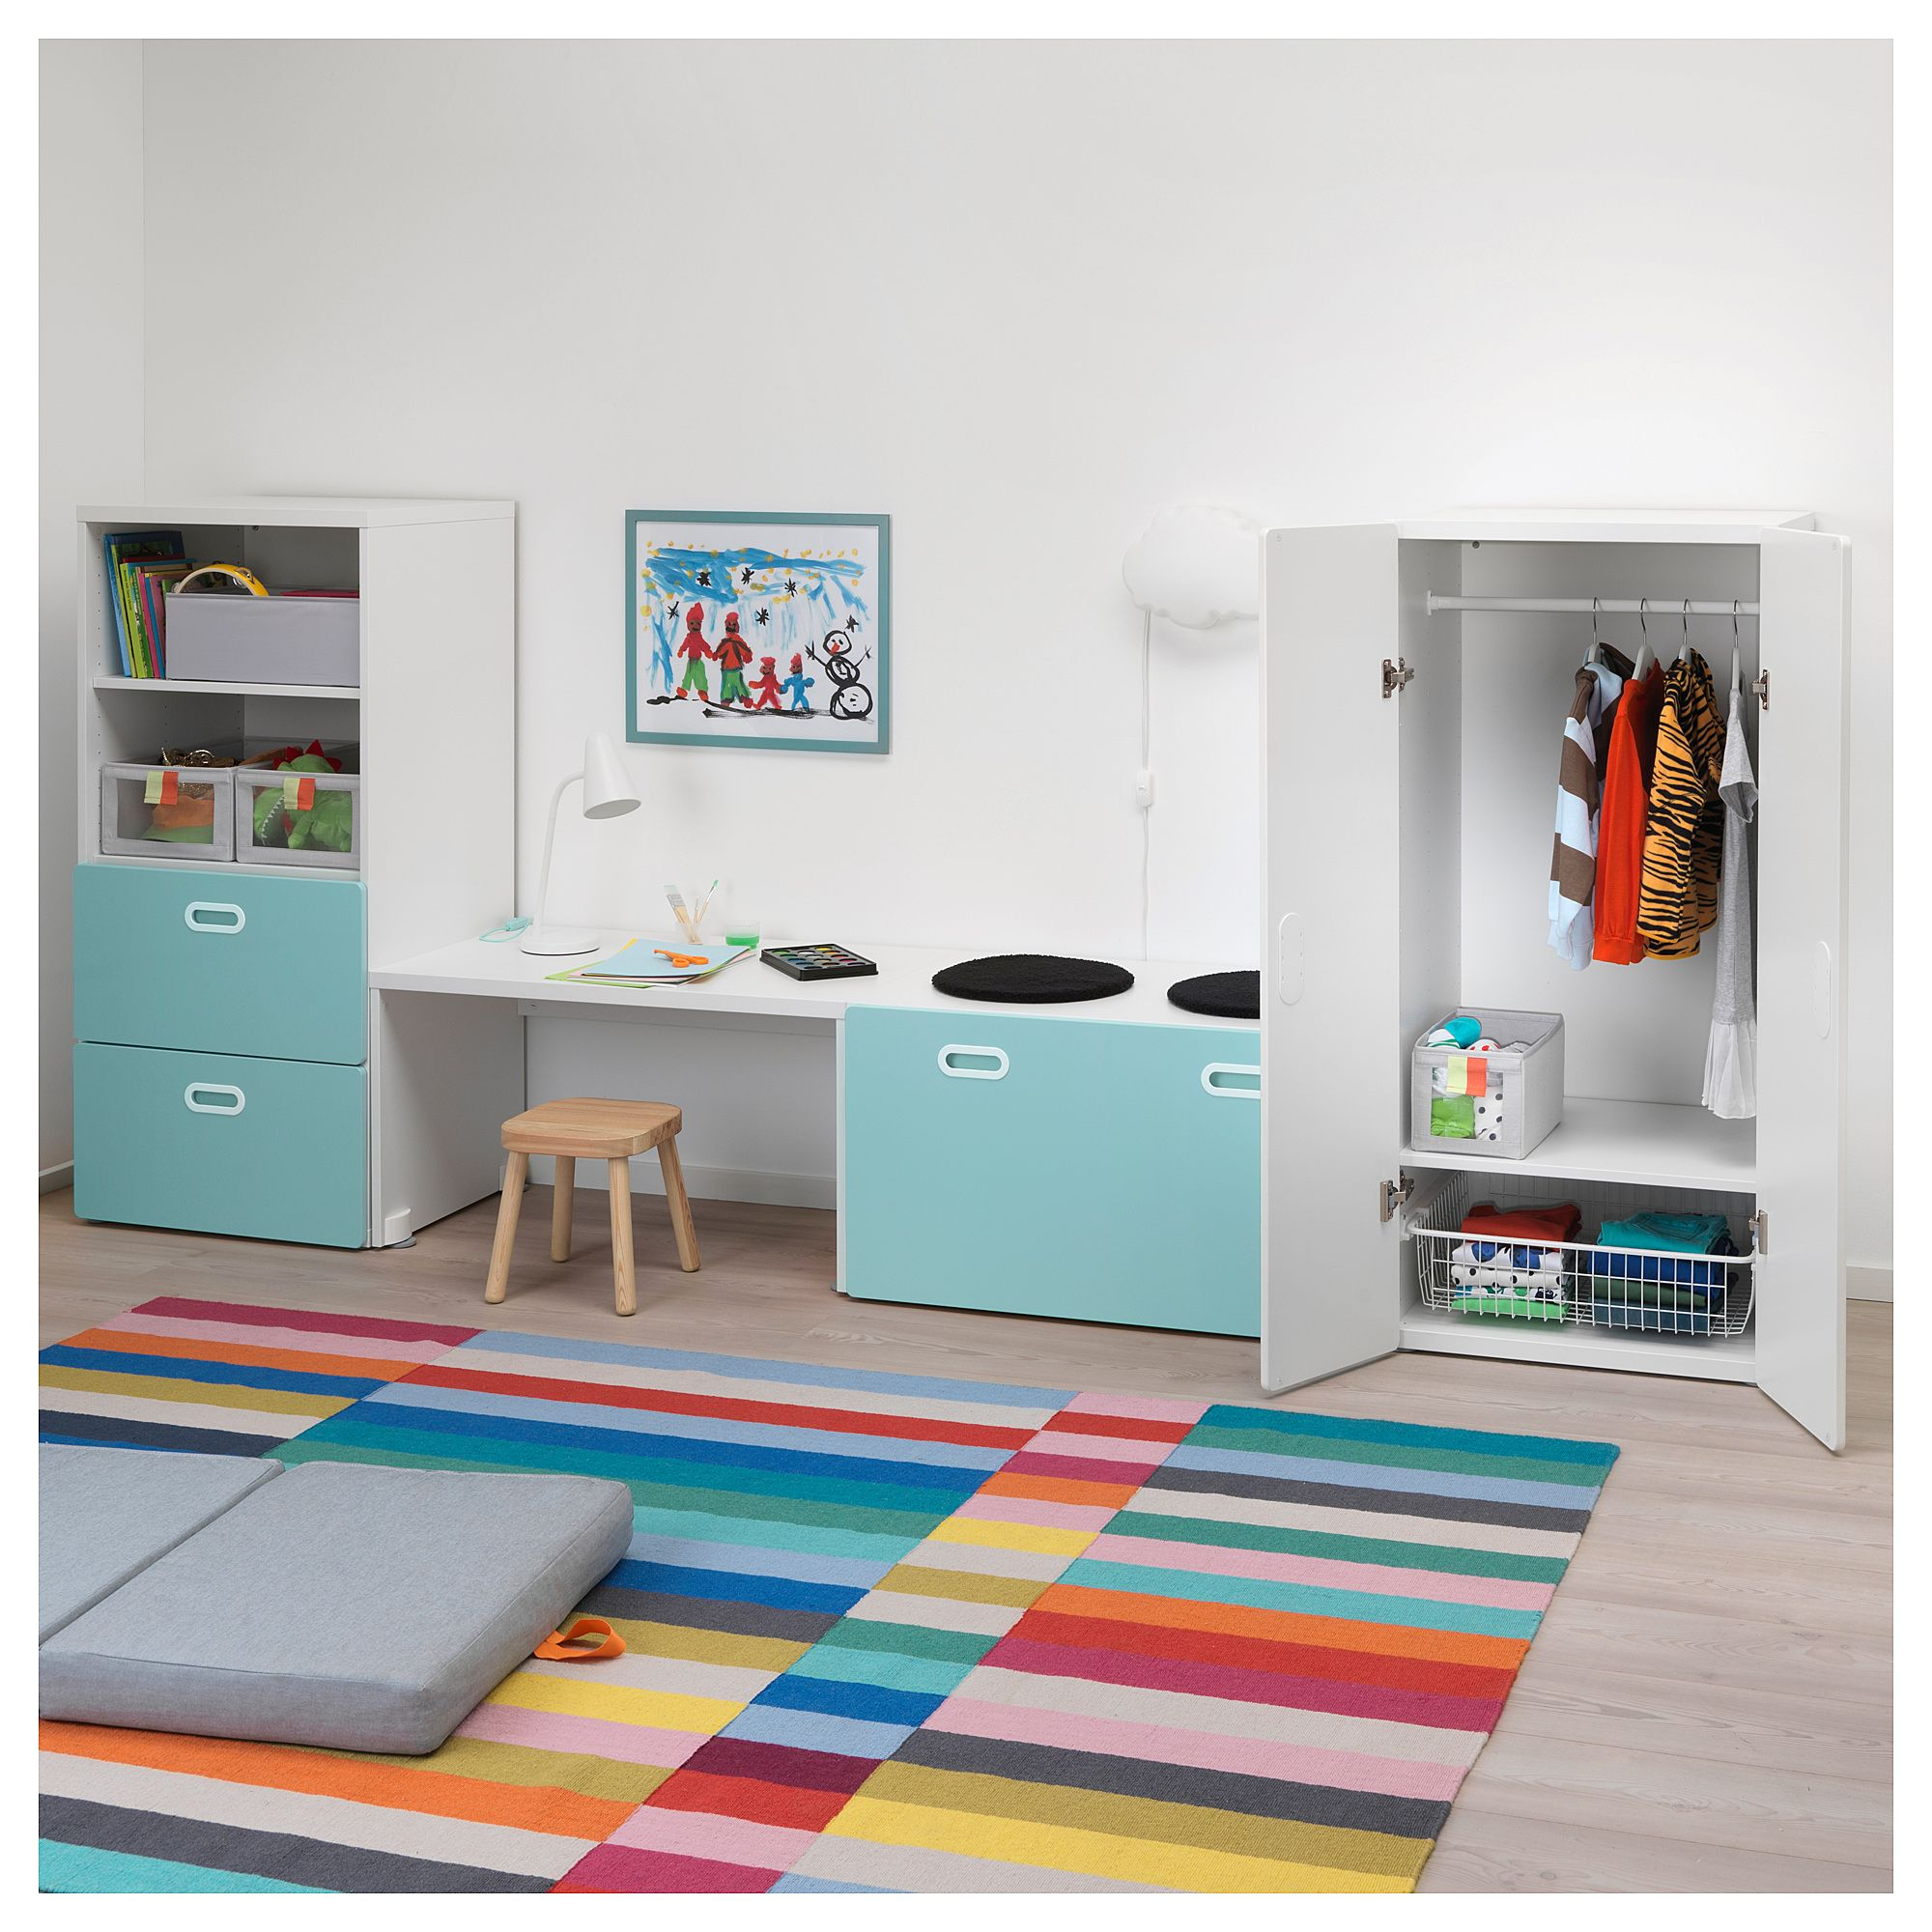 Ikea Kinderzimmer Stuva Planer Ikea Stuva Fritids Storage Combination White Light Blue